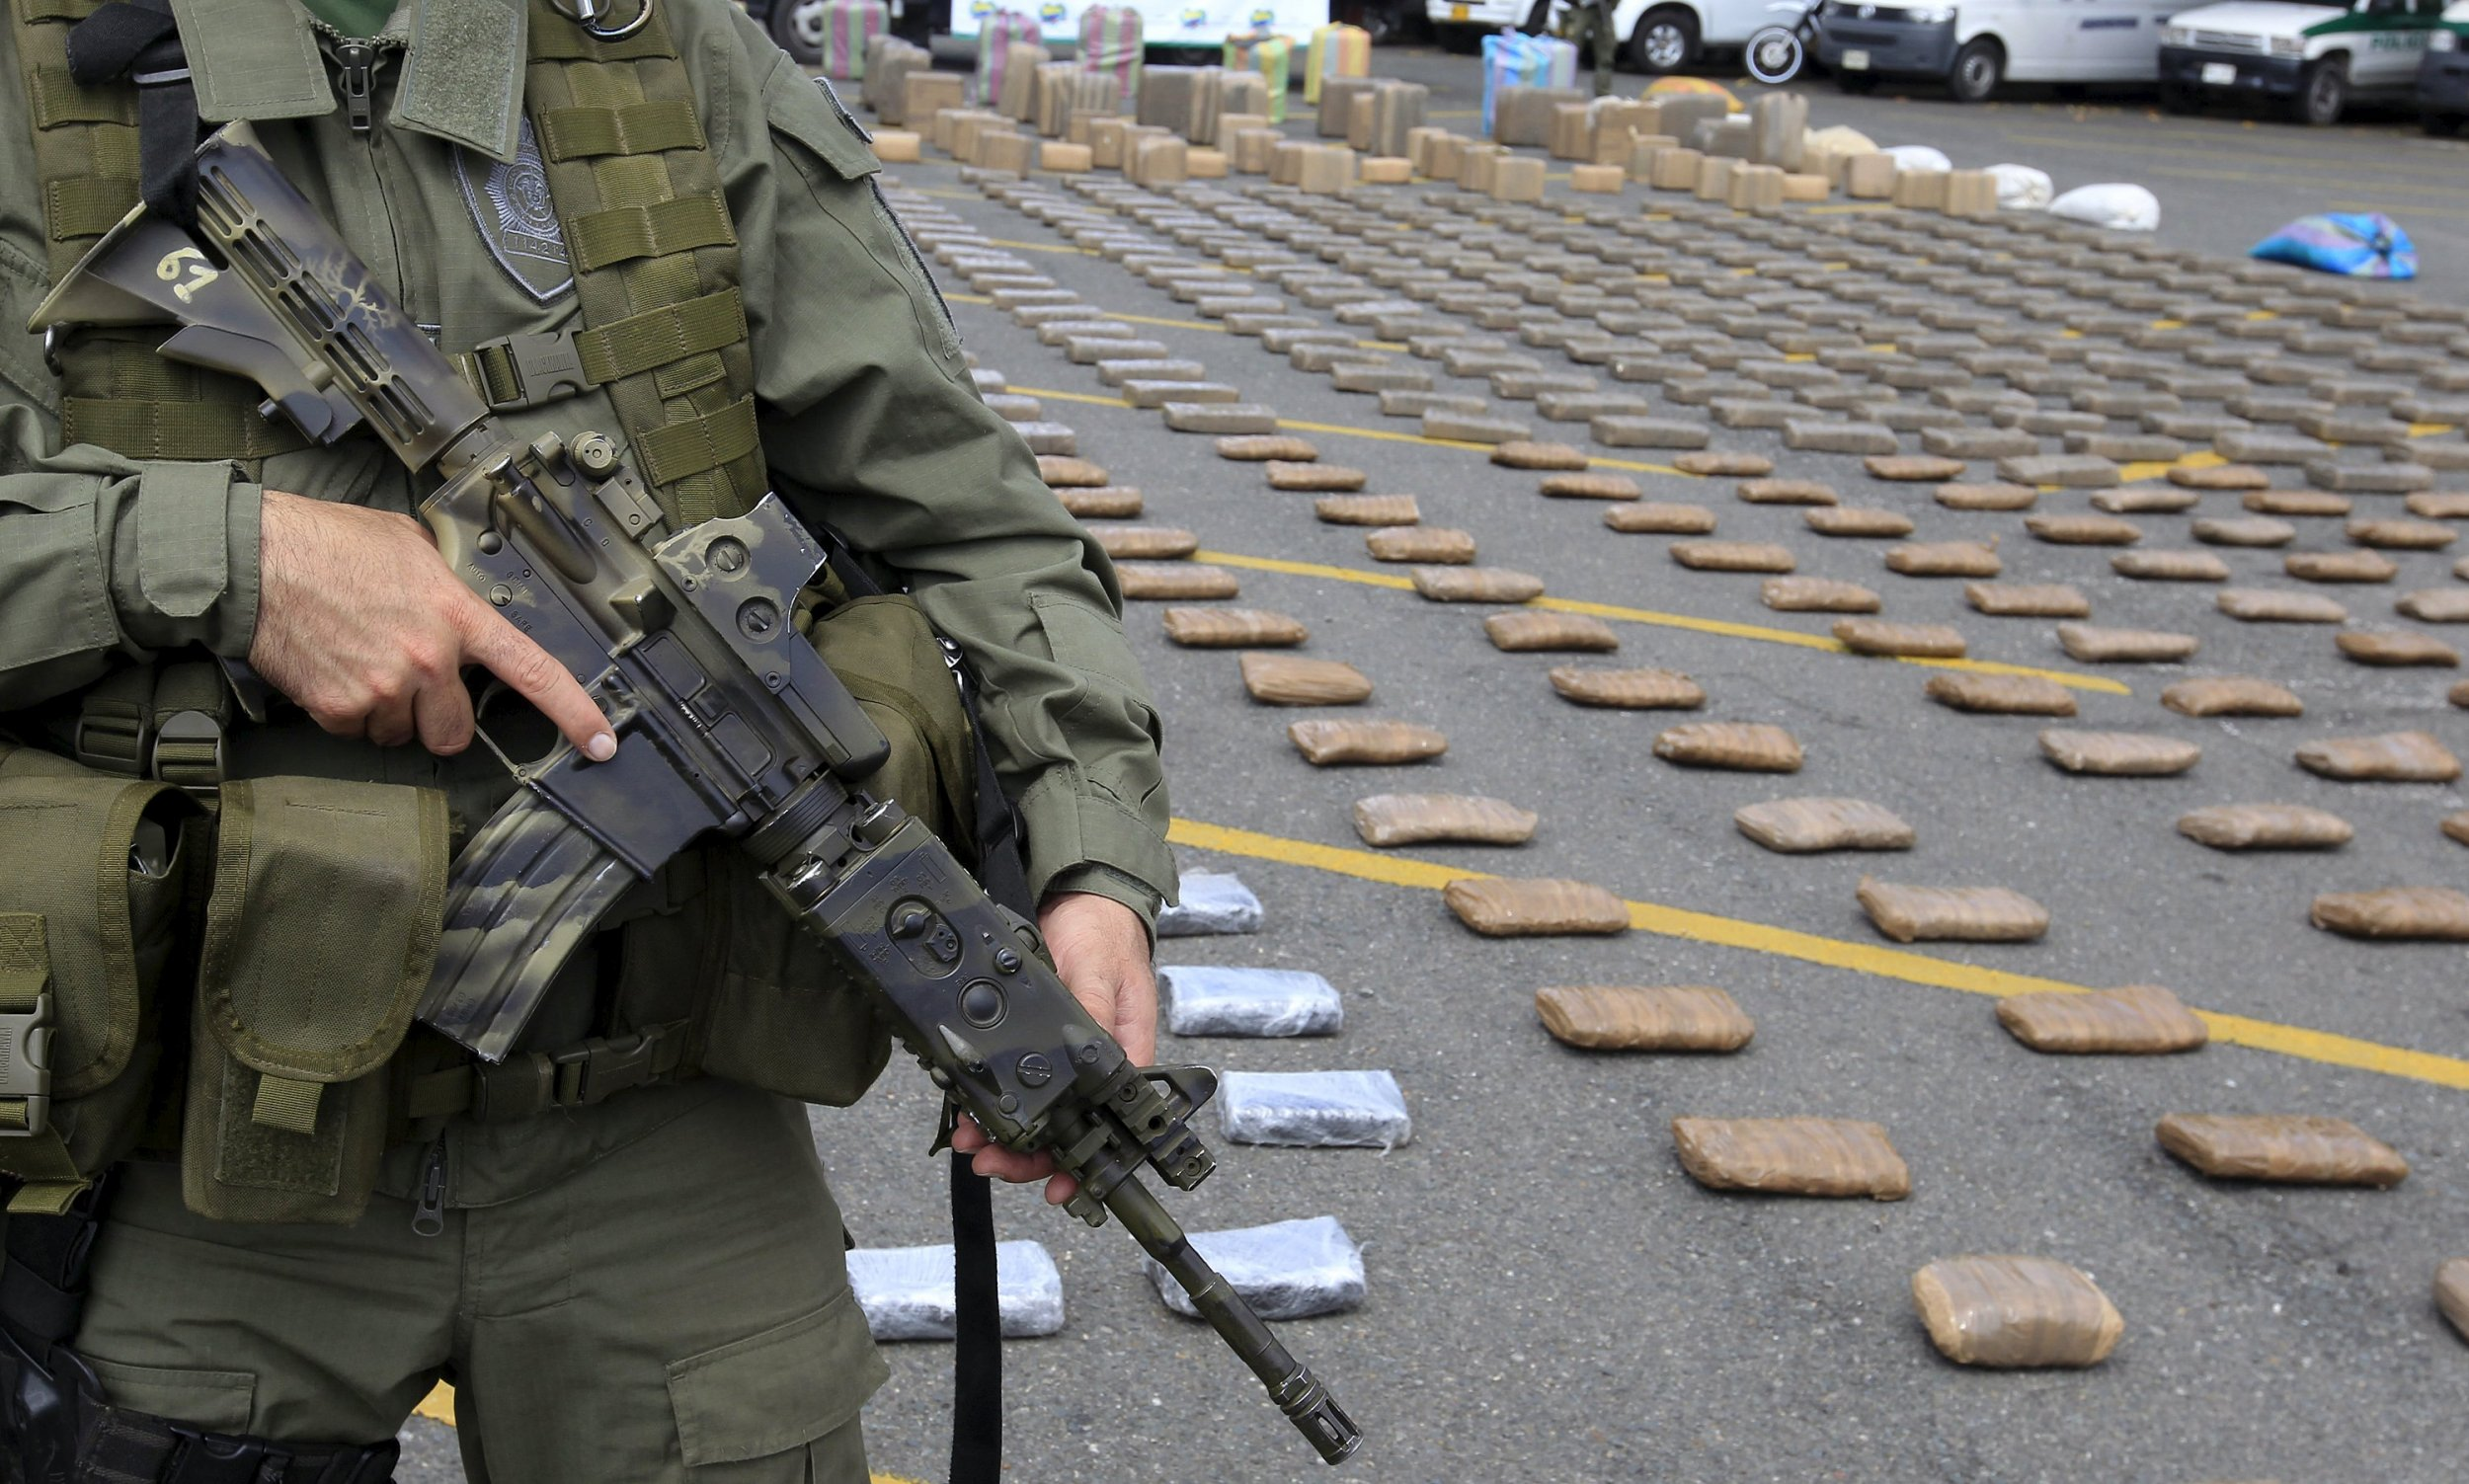 drug trafficking colombia Drug trafficking and organized crime in the americas:  as a direct result, levels of drug-fueled violence in colombia spiraled out of control in the late 1990s.